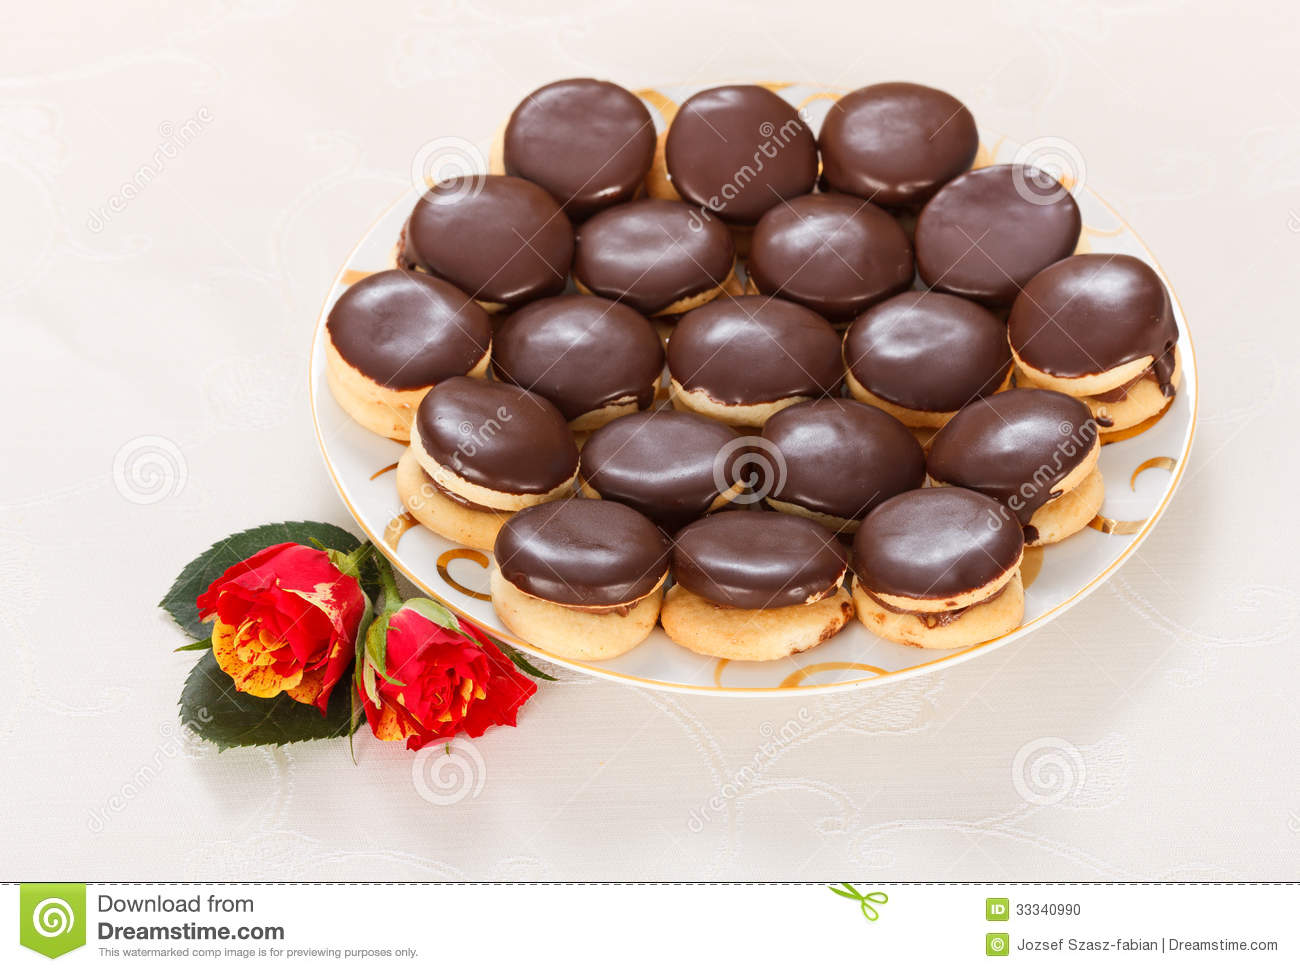 Ischler Cookies Stock Photo - Image: 33340990